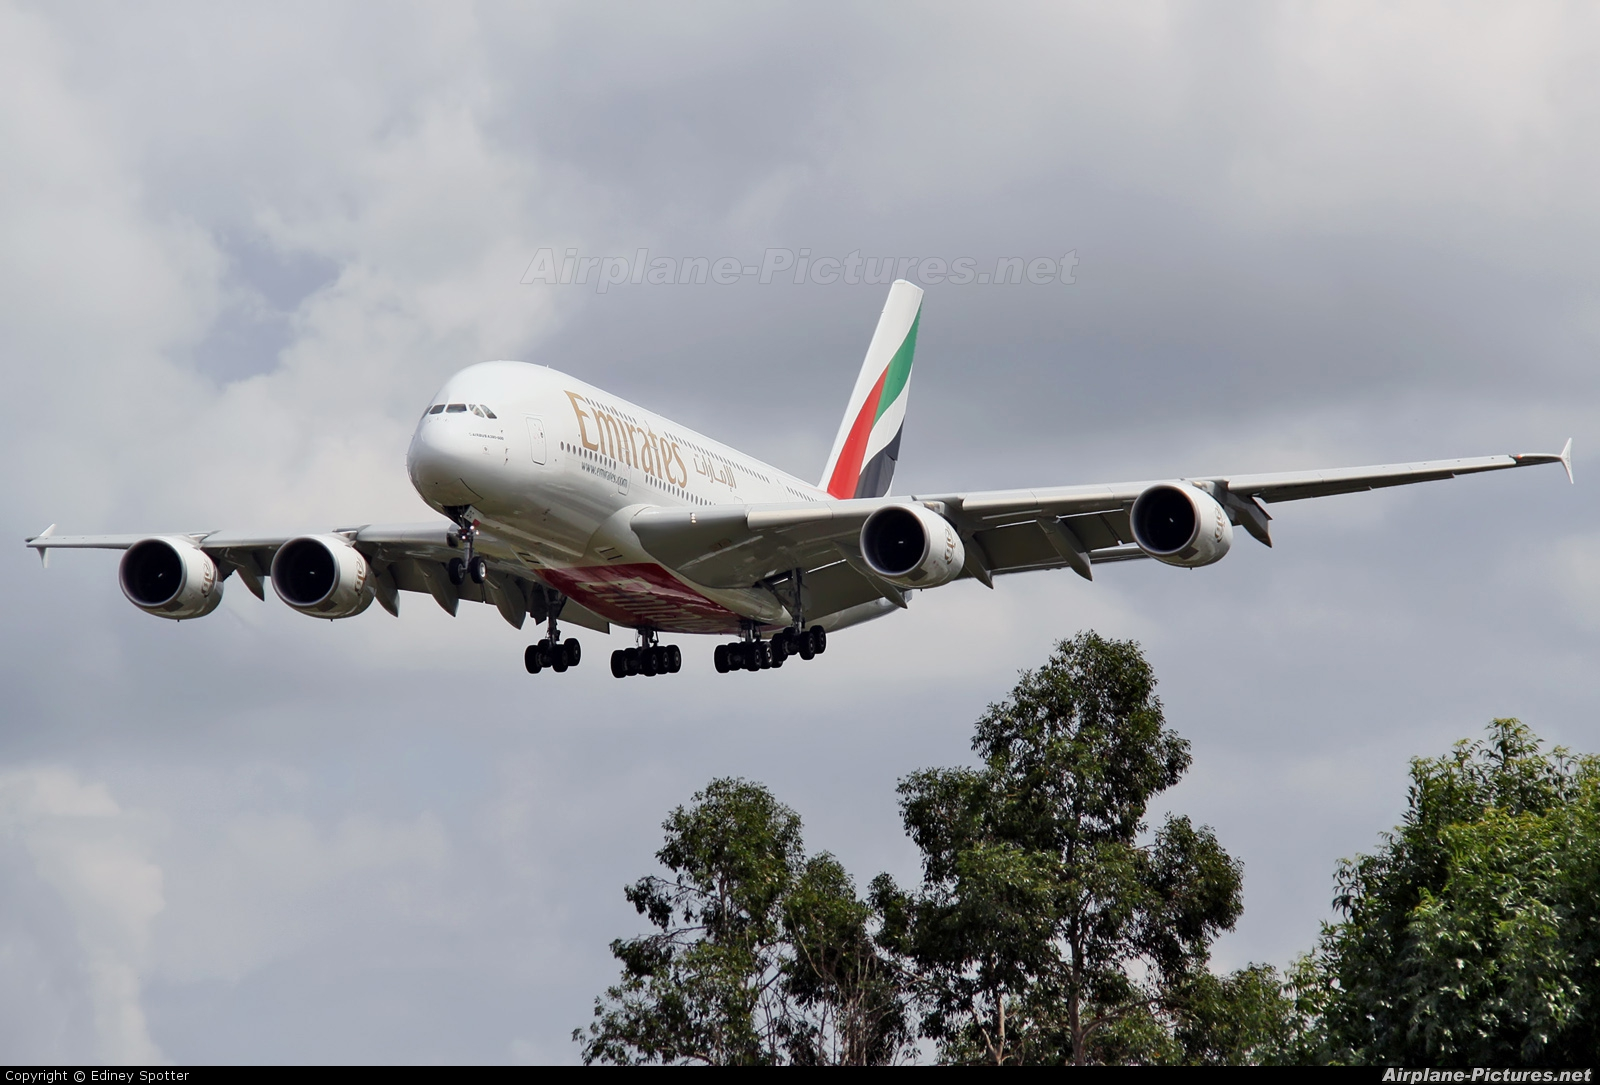 Emirates Airlines A6-EDC aircraft at London - Heathrow